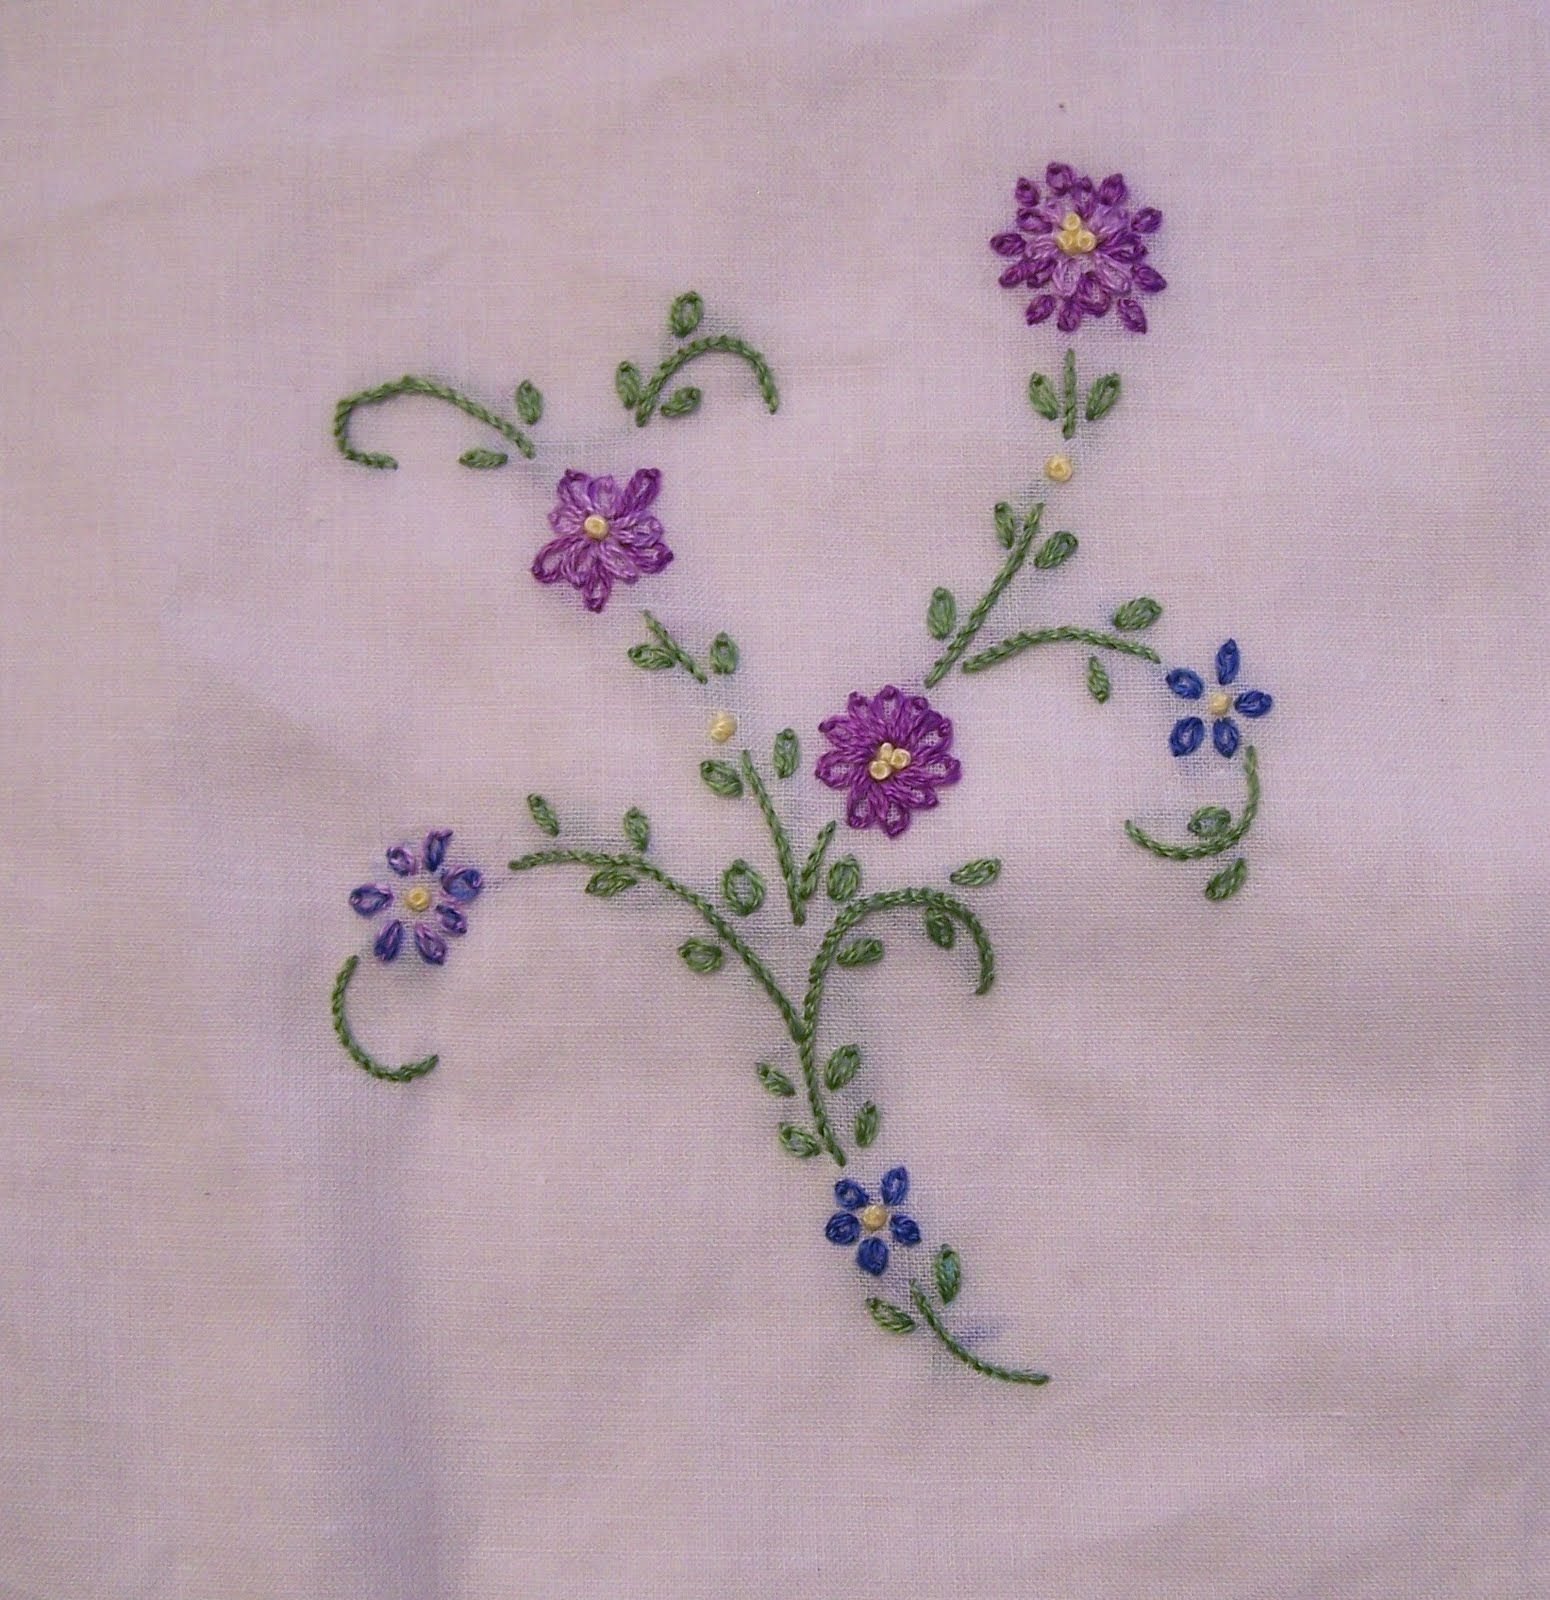 Hand Embroidery Stitches One Of My Favorite Embroidery Stitches